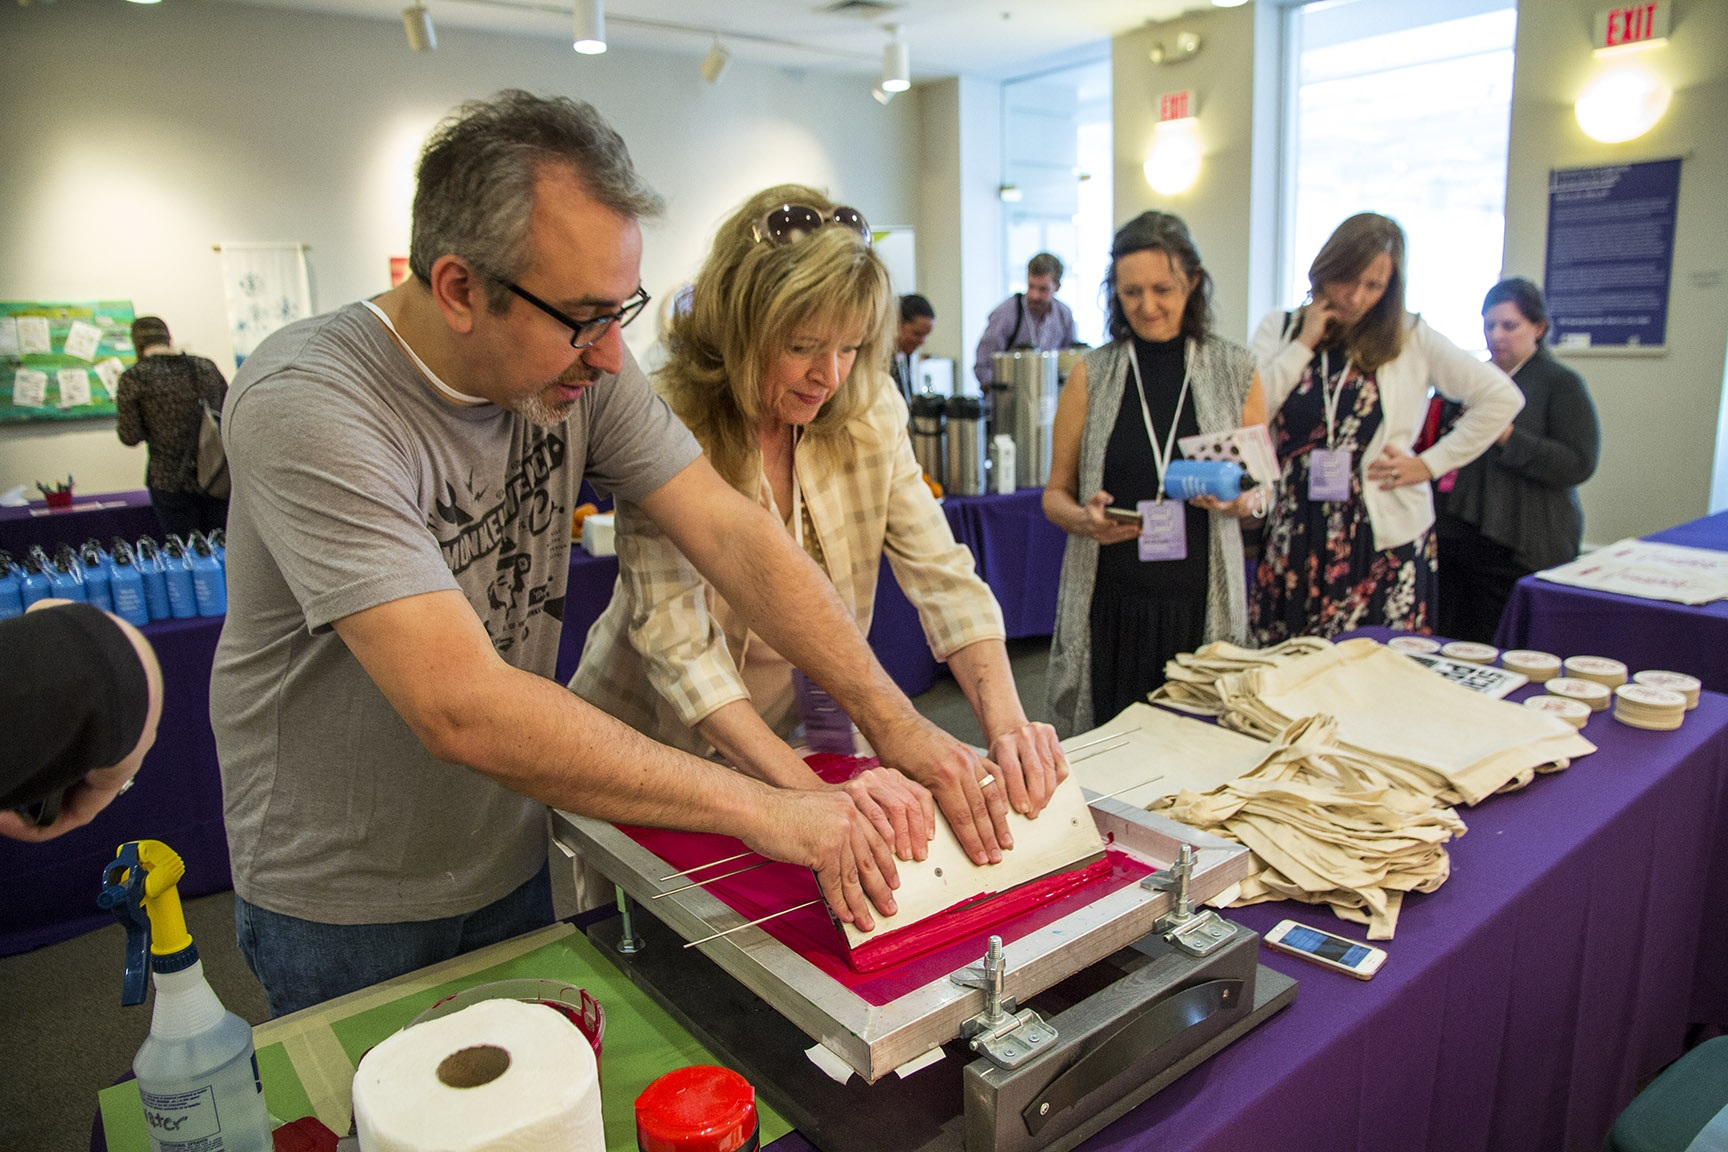 Man helps woman create a screen print on a tote bag during a break at a conference